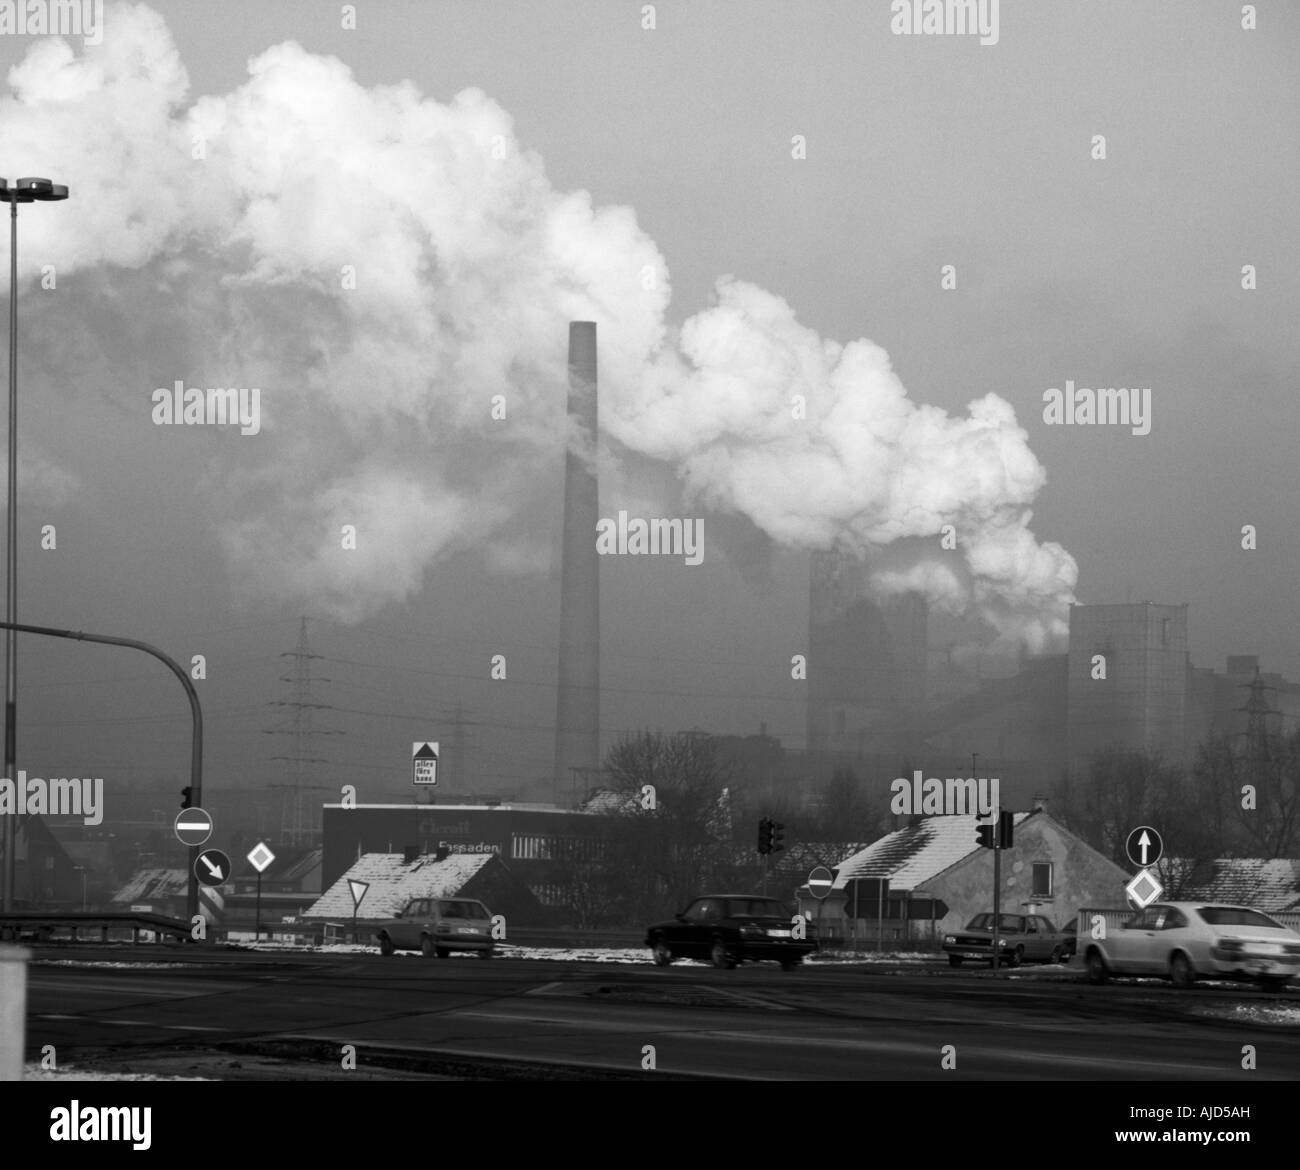 coal mining and coking plant at the freeway A 42, Germany, North Rhine-Westphalia, Ruhr Area, Oberhausen - Stock Image